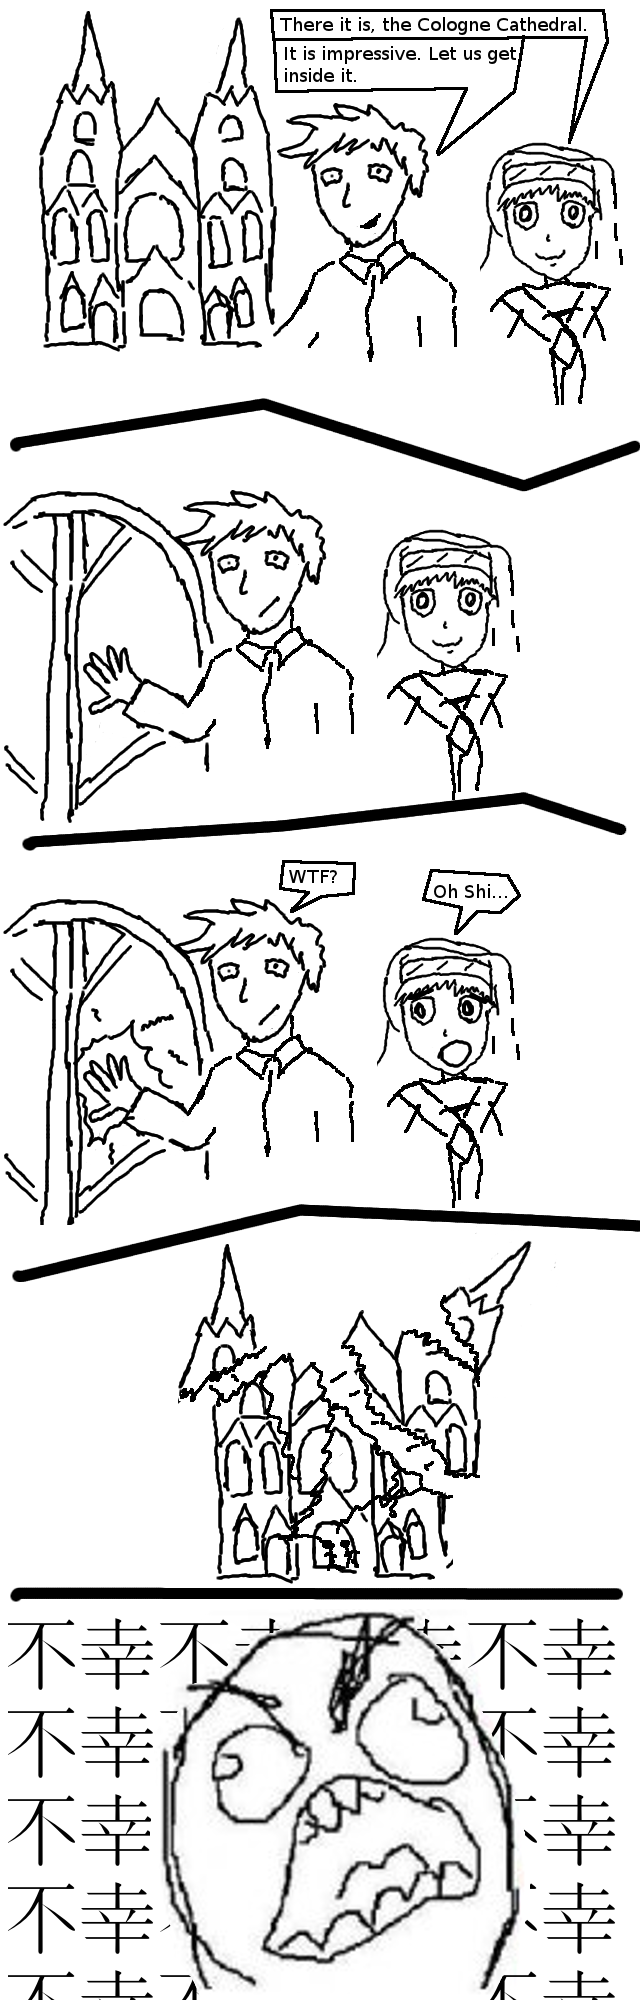 "This comic is a fan-art for the ""To Aru Majutsu no Index"" anime. -- Panel 1: Touma and Index are standing in front of the Cologne Cathedral. Index: ""There it is, the Cologne Cathedral."" Touma: ""It is impressive. Let us get inside it."" -- Panel 2-3: Touma touches its door, the door begins to crack. Touma: ""WTF?"" Index: ""Oh Shi..."". -- Panel 4: The Cologne Cathedral breaks into parts. -- Panel 5: A rageface in front of a background of many ""Fukoda""-Symbols. ---- guvf vf n ersrerapr gb gur svefg rcvfbqr jurer vaqrk jrnef n zbovyr puhepu naq nf gbhzn gbhpurf vg vg vf qrfgeblrq"